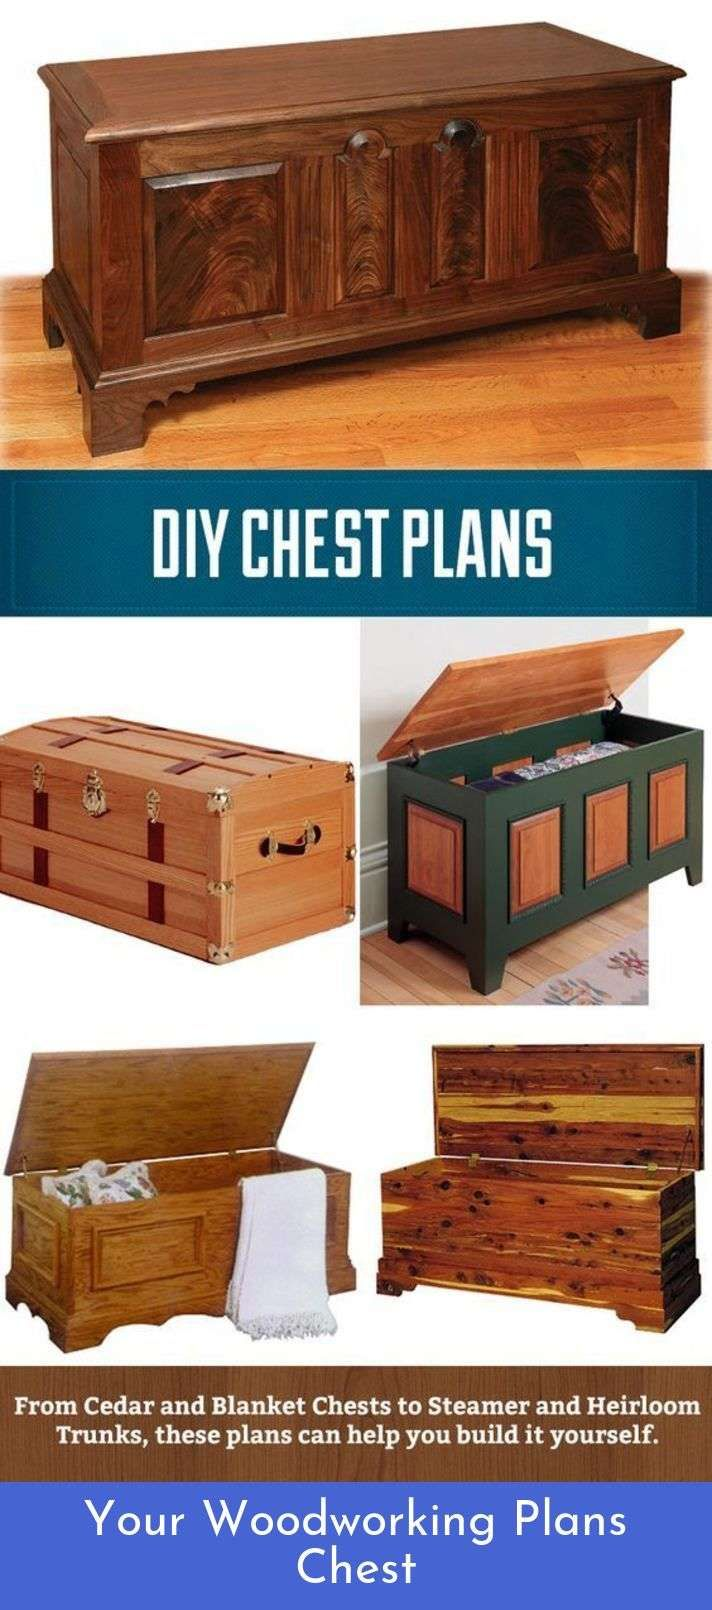 Get New Free Woodworking Plans South Africa Furniture Project Plans Woodworking Diy Wood Projects